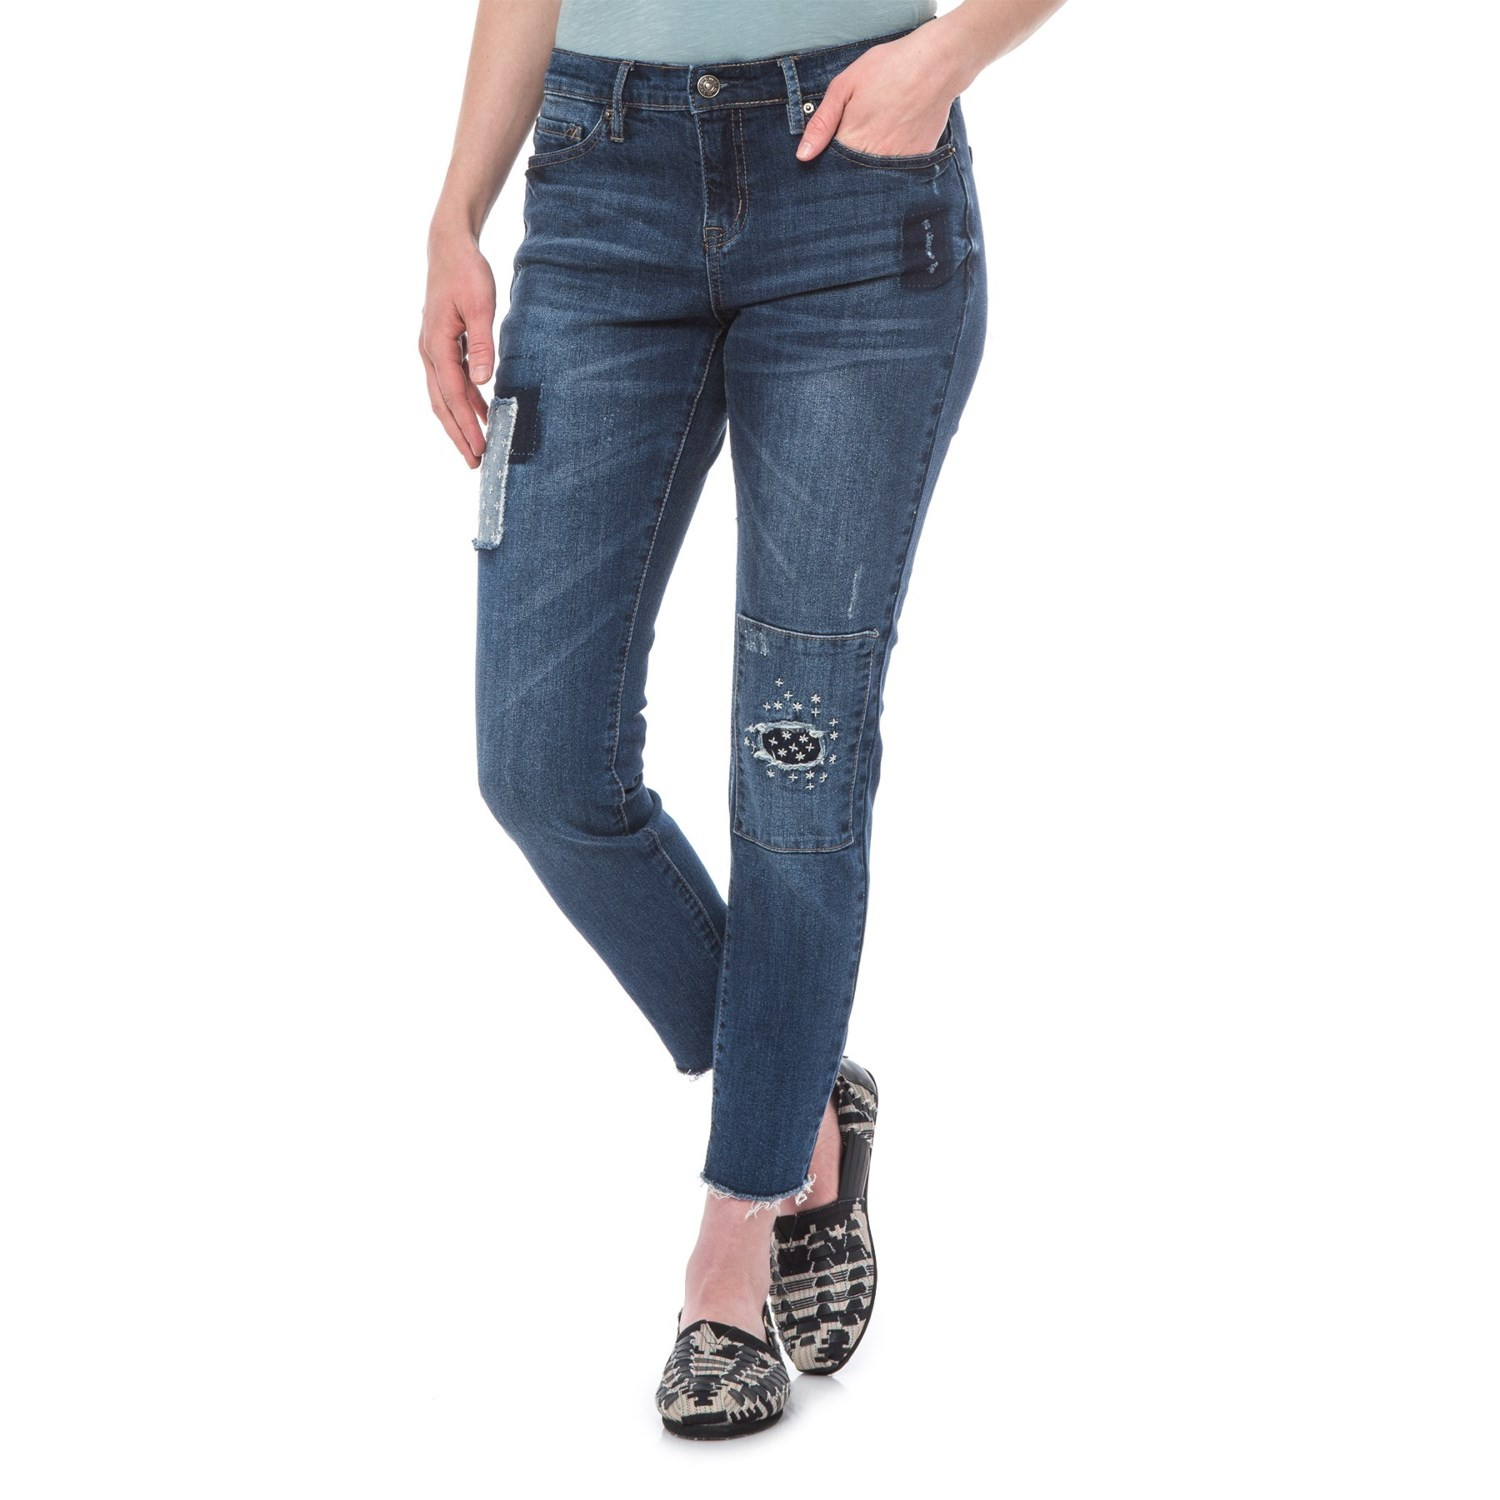 Washed Floral Embroidered Skinny Jeans Nicole Miller New York Authentic Sale line Eastbay Outlet Collections Sale